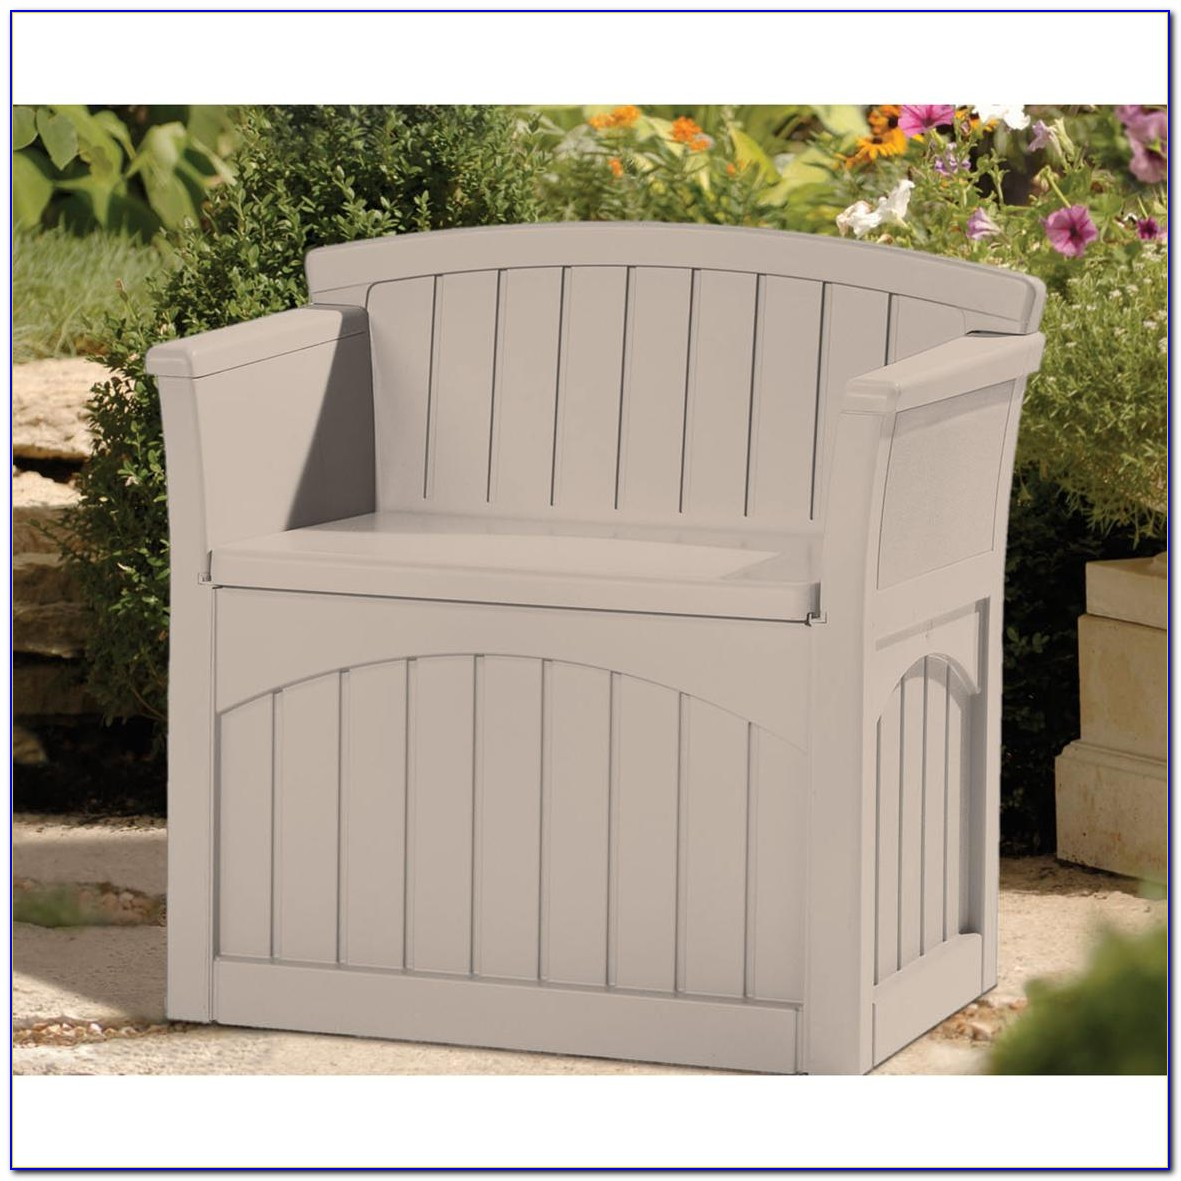 Suncast Patio Storage Bench 44 Gallon